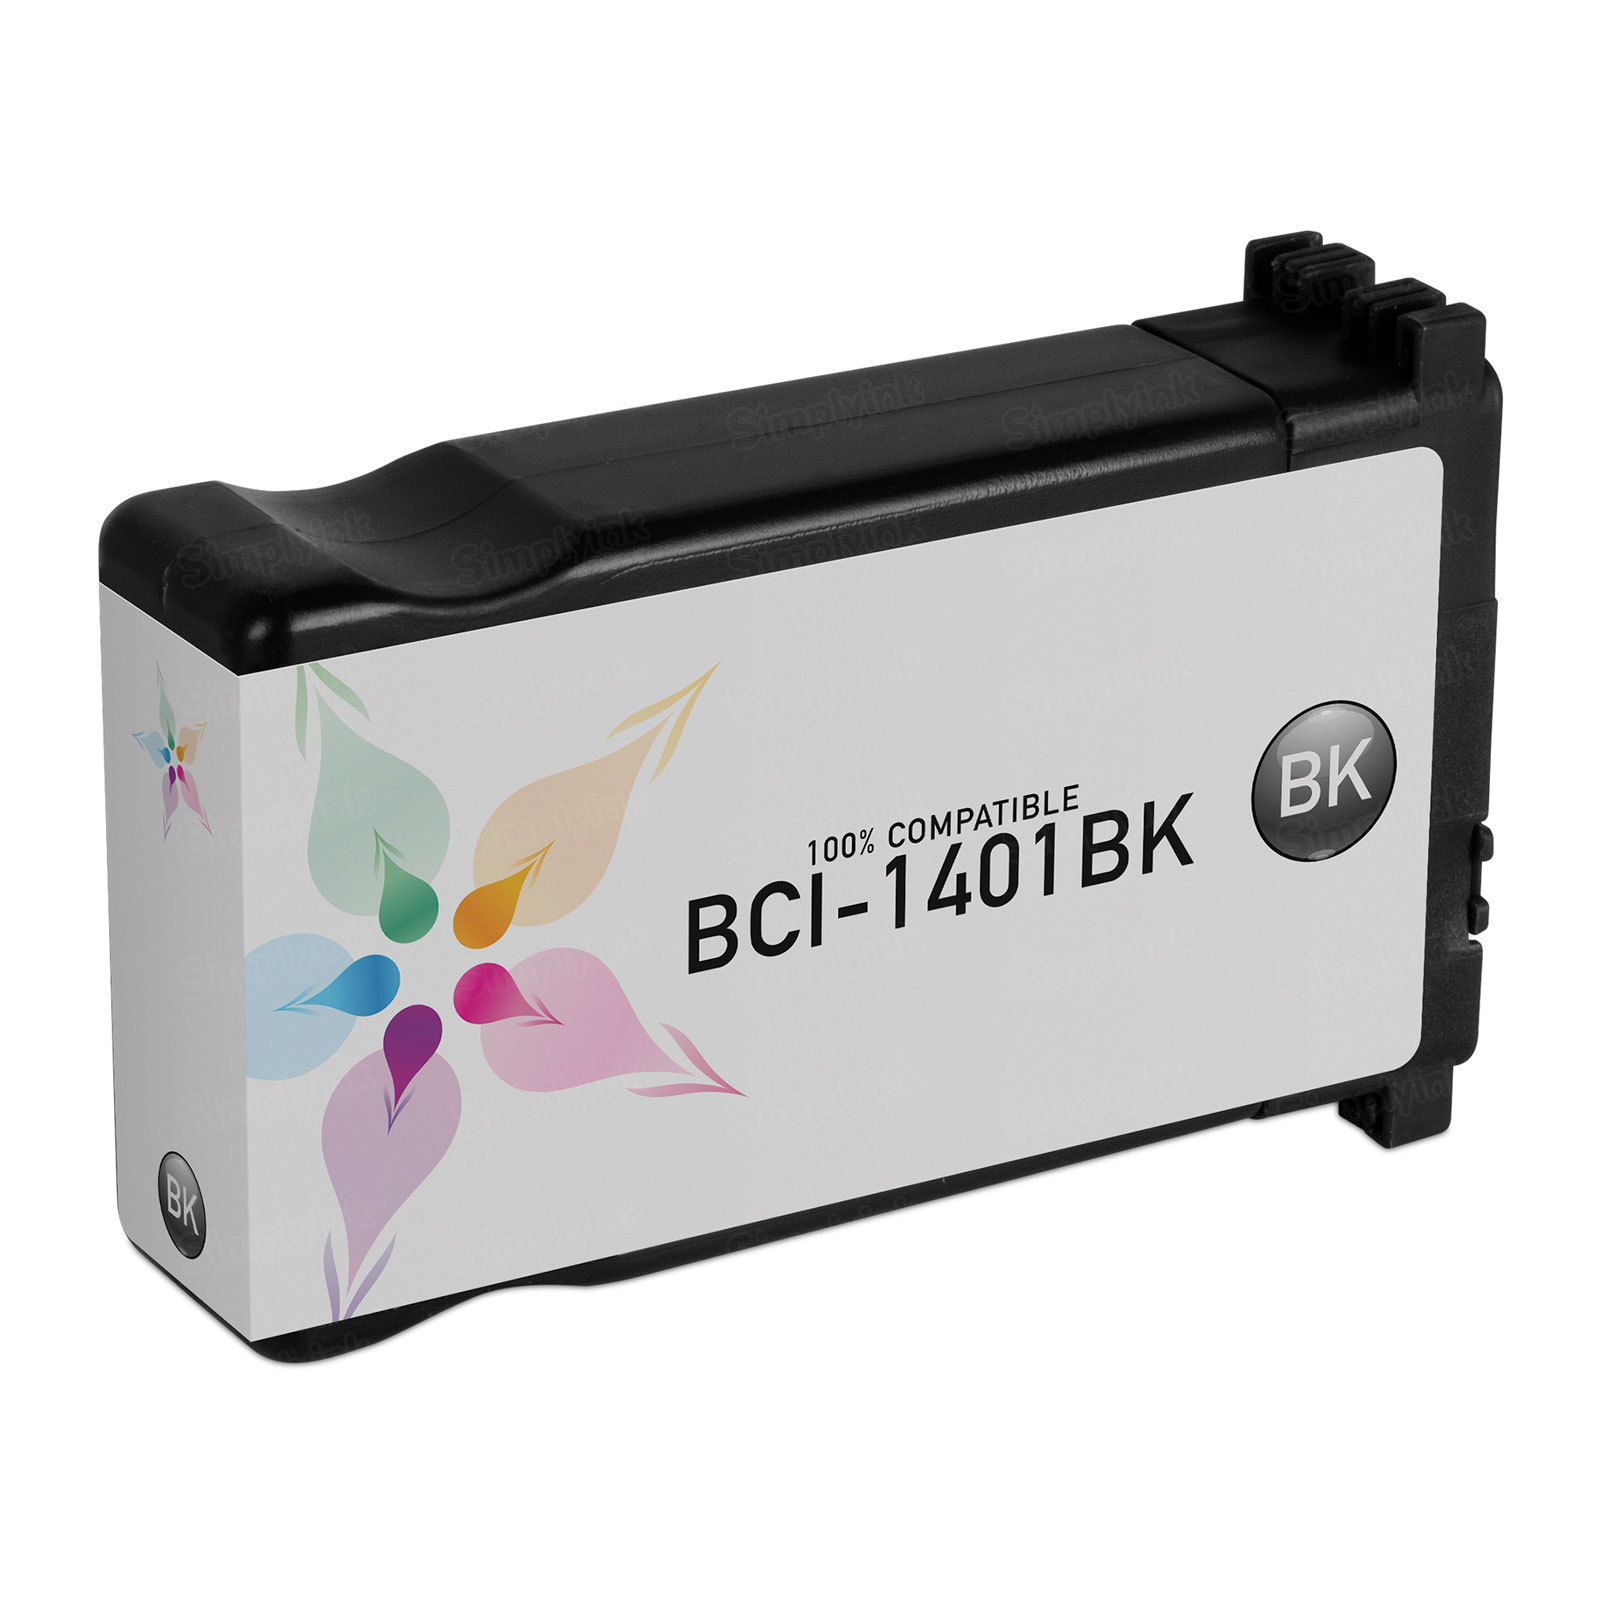 Canon Compatible BCI1401BK Black Ink for imagePROGRAF W7250